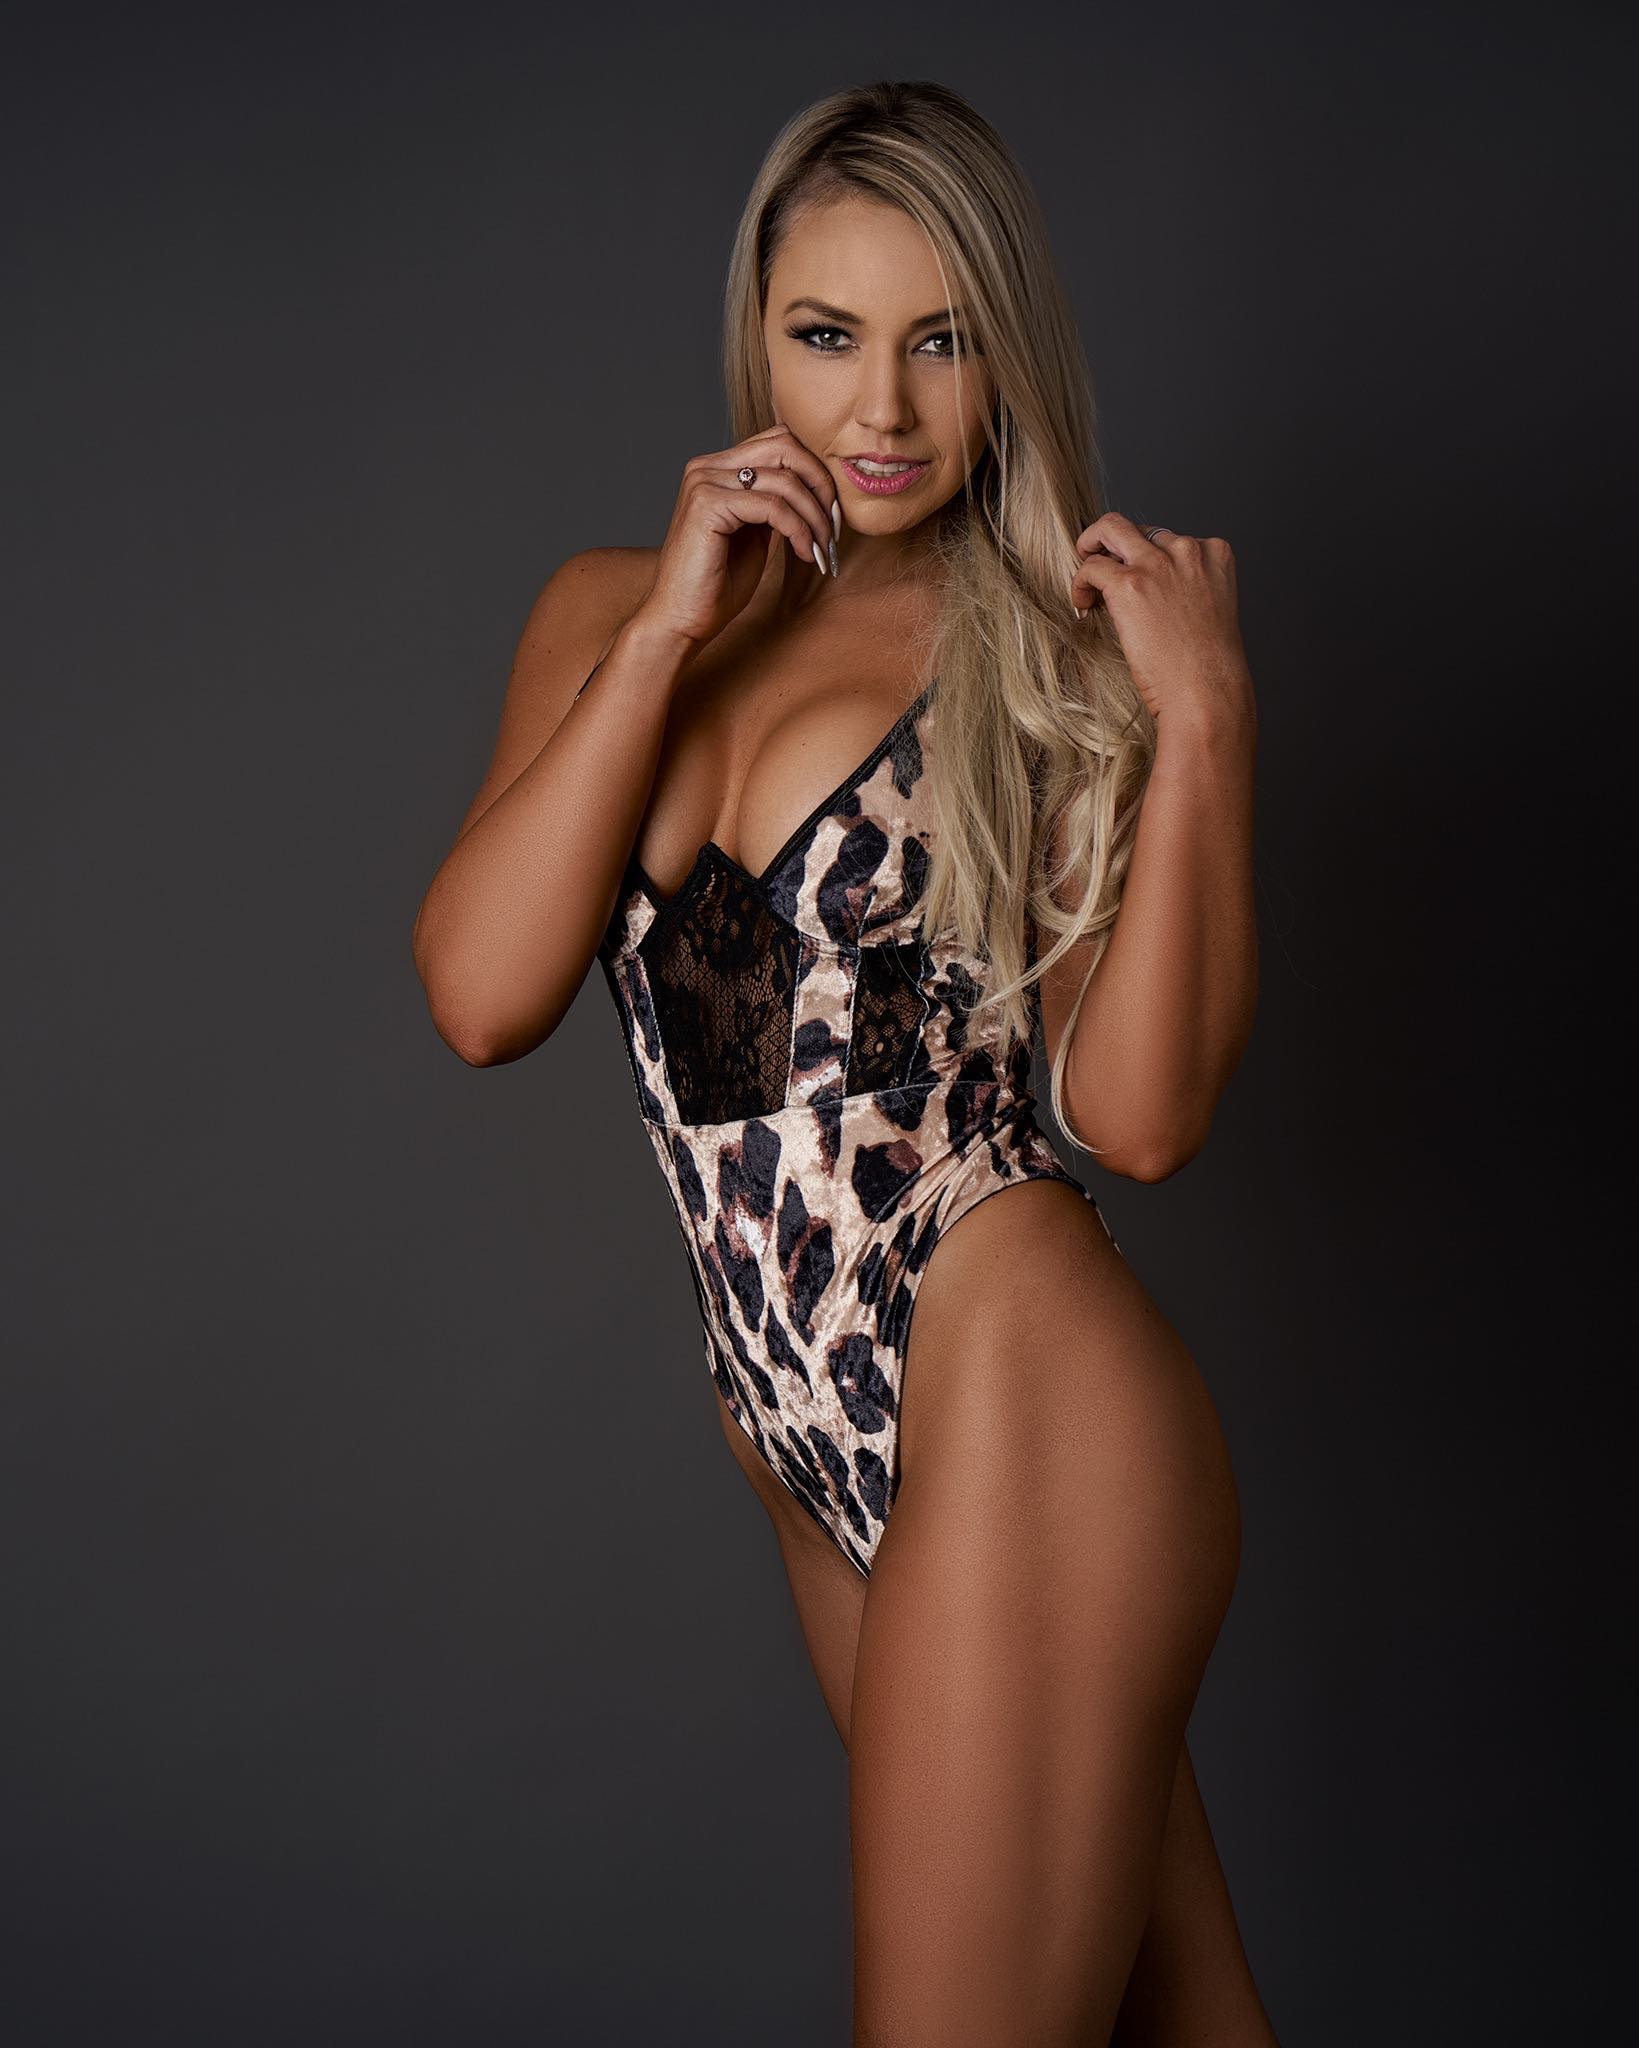 Our South African Babes feature with Farrah Rymer